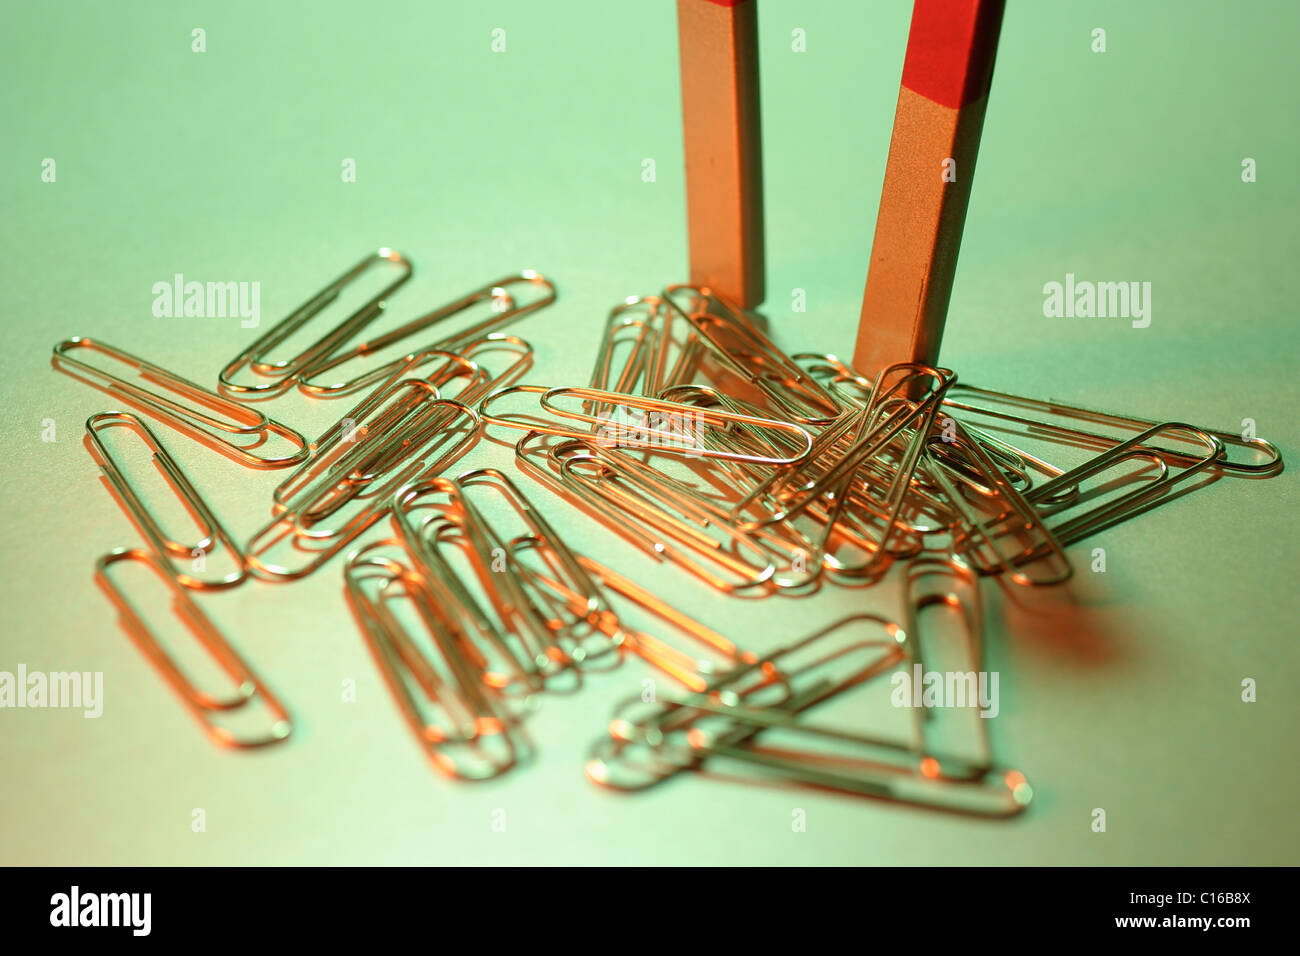 Magnet with paper clips Stock Photo